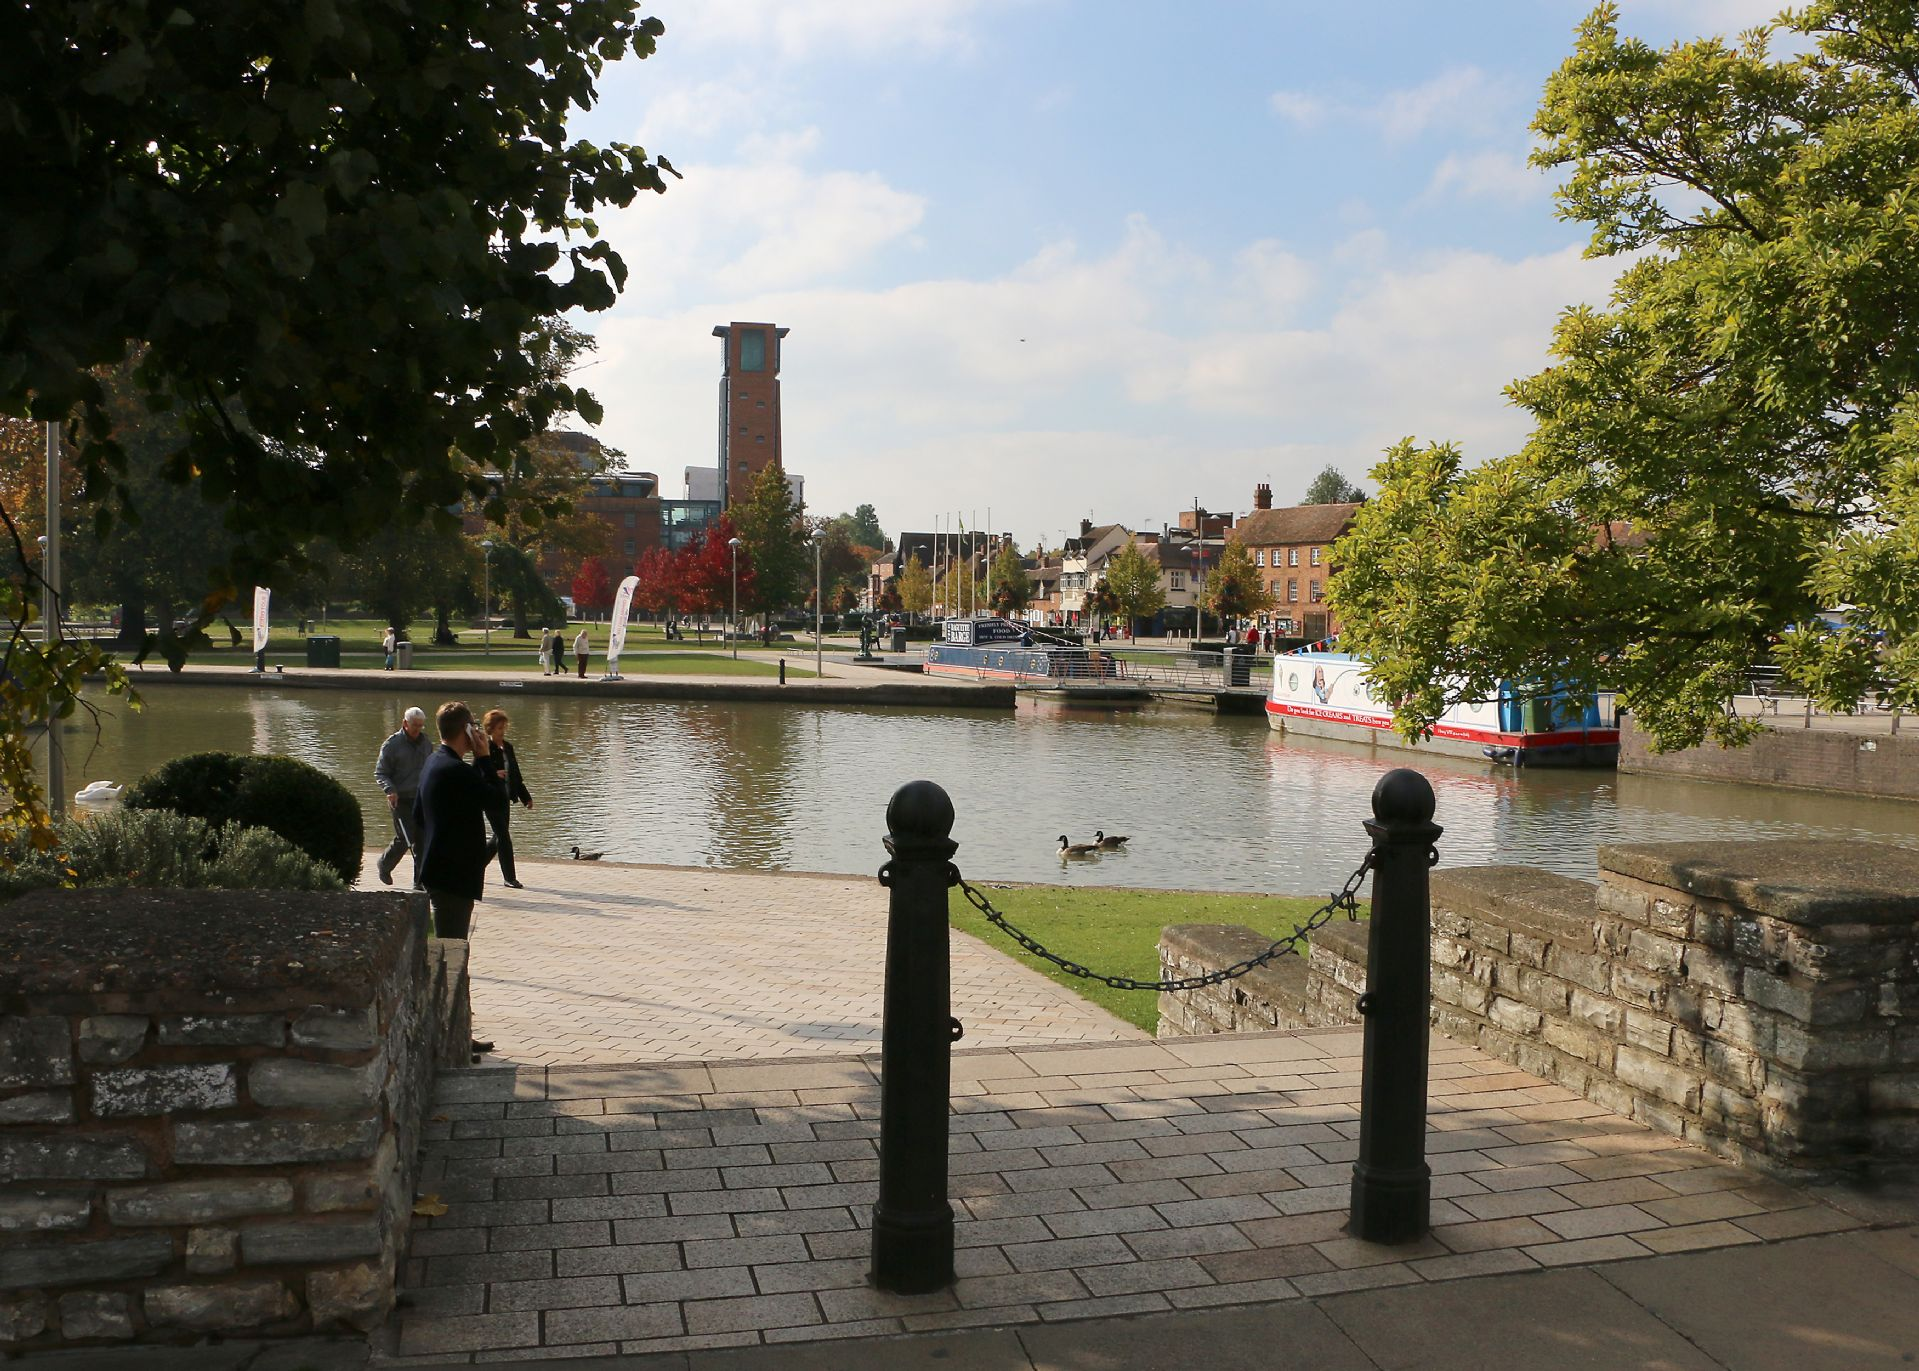 Stratford-upon-Avon is 20 minutes drive from the property